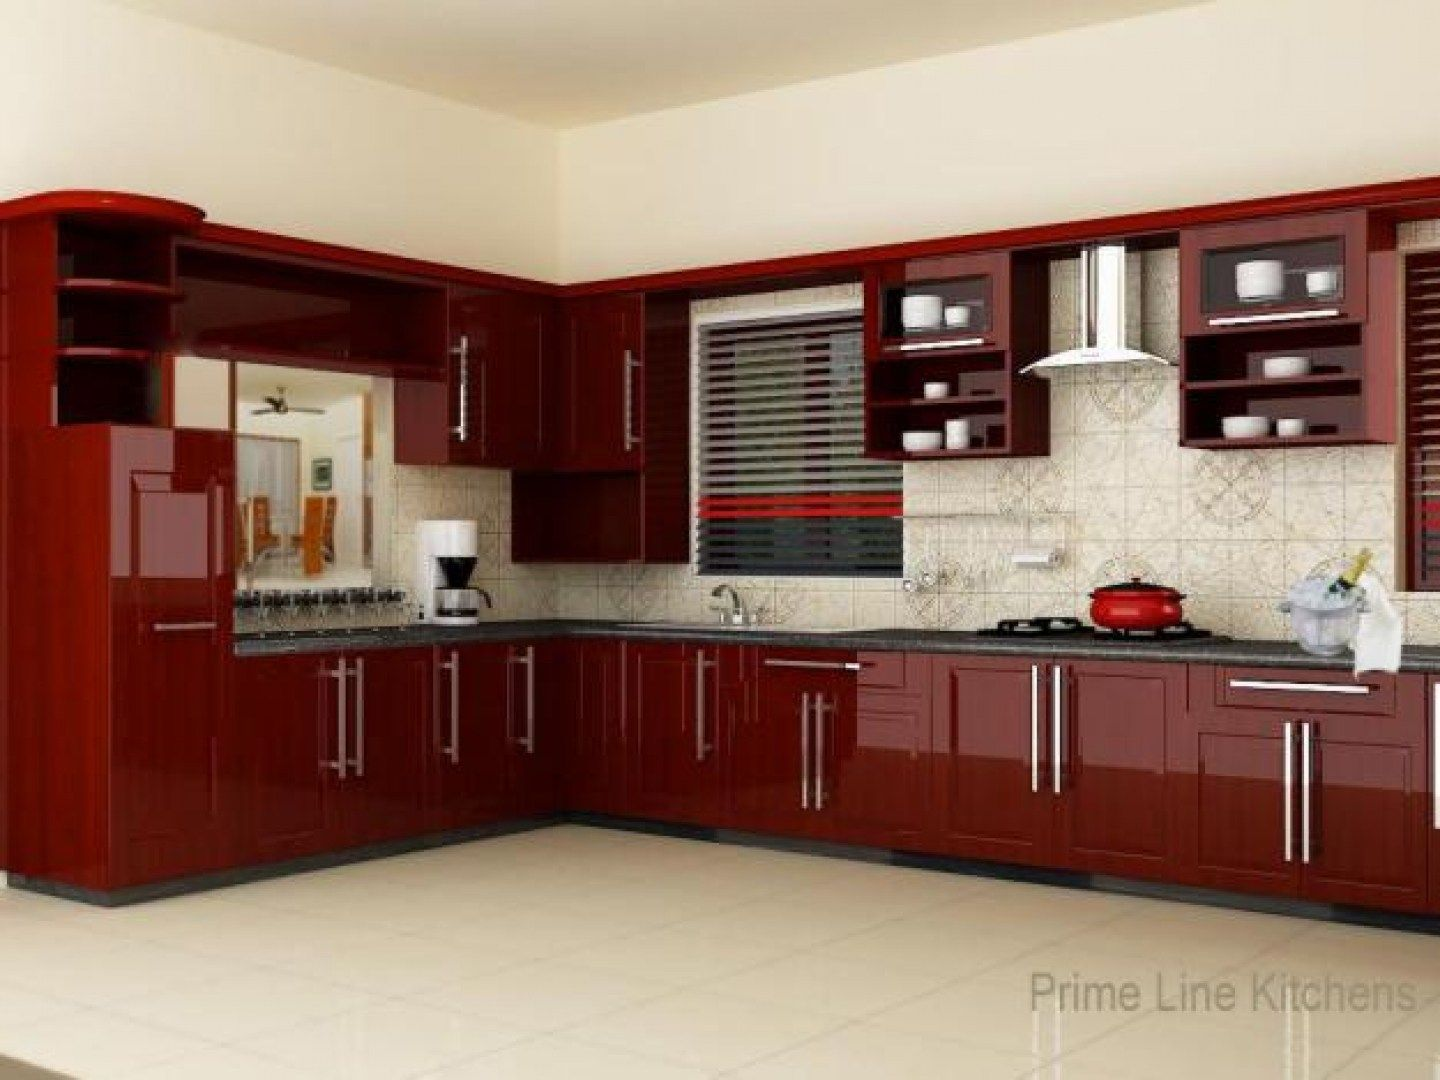 Kitchen design ideas kitchen woodwork designs hyderabad for Kitchen style ideas